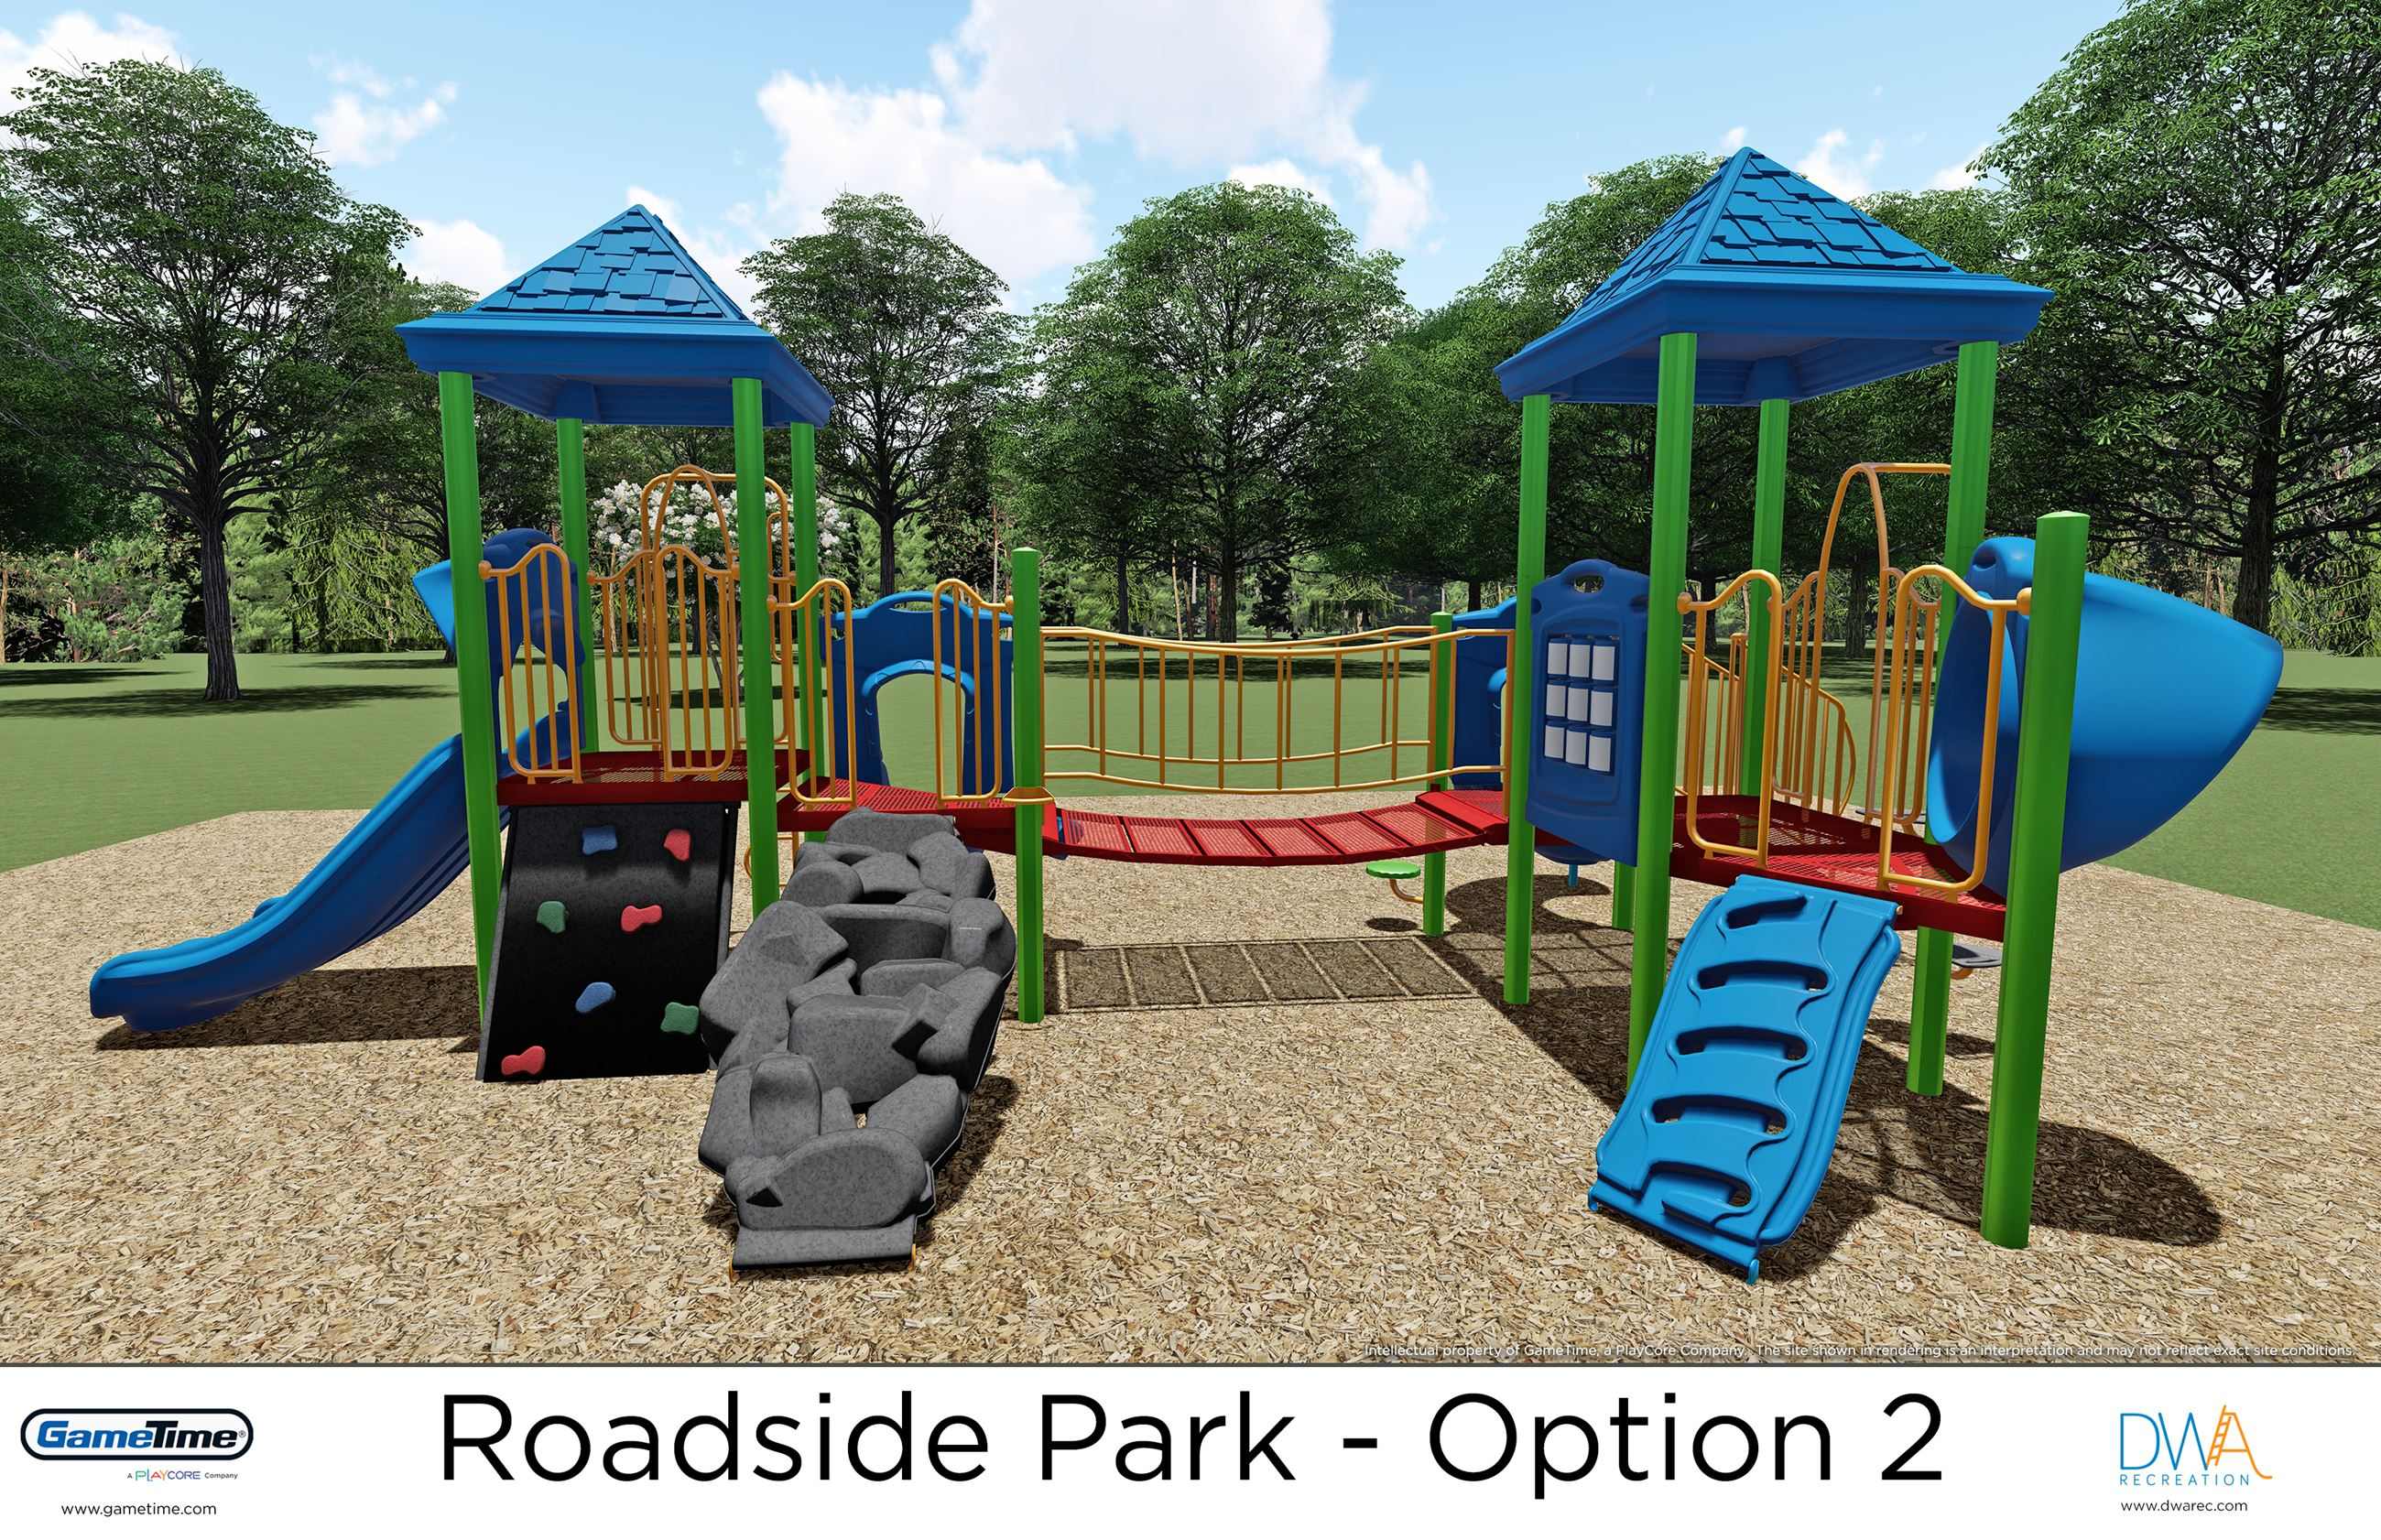 Computer rendering of the new play structure for ages 2-5 planned for Roadside Park